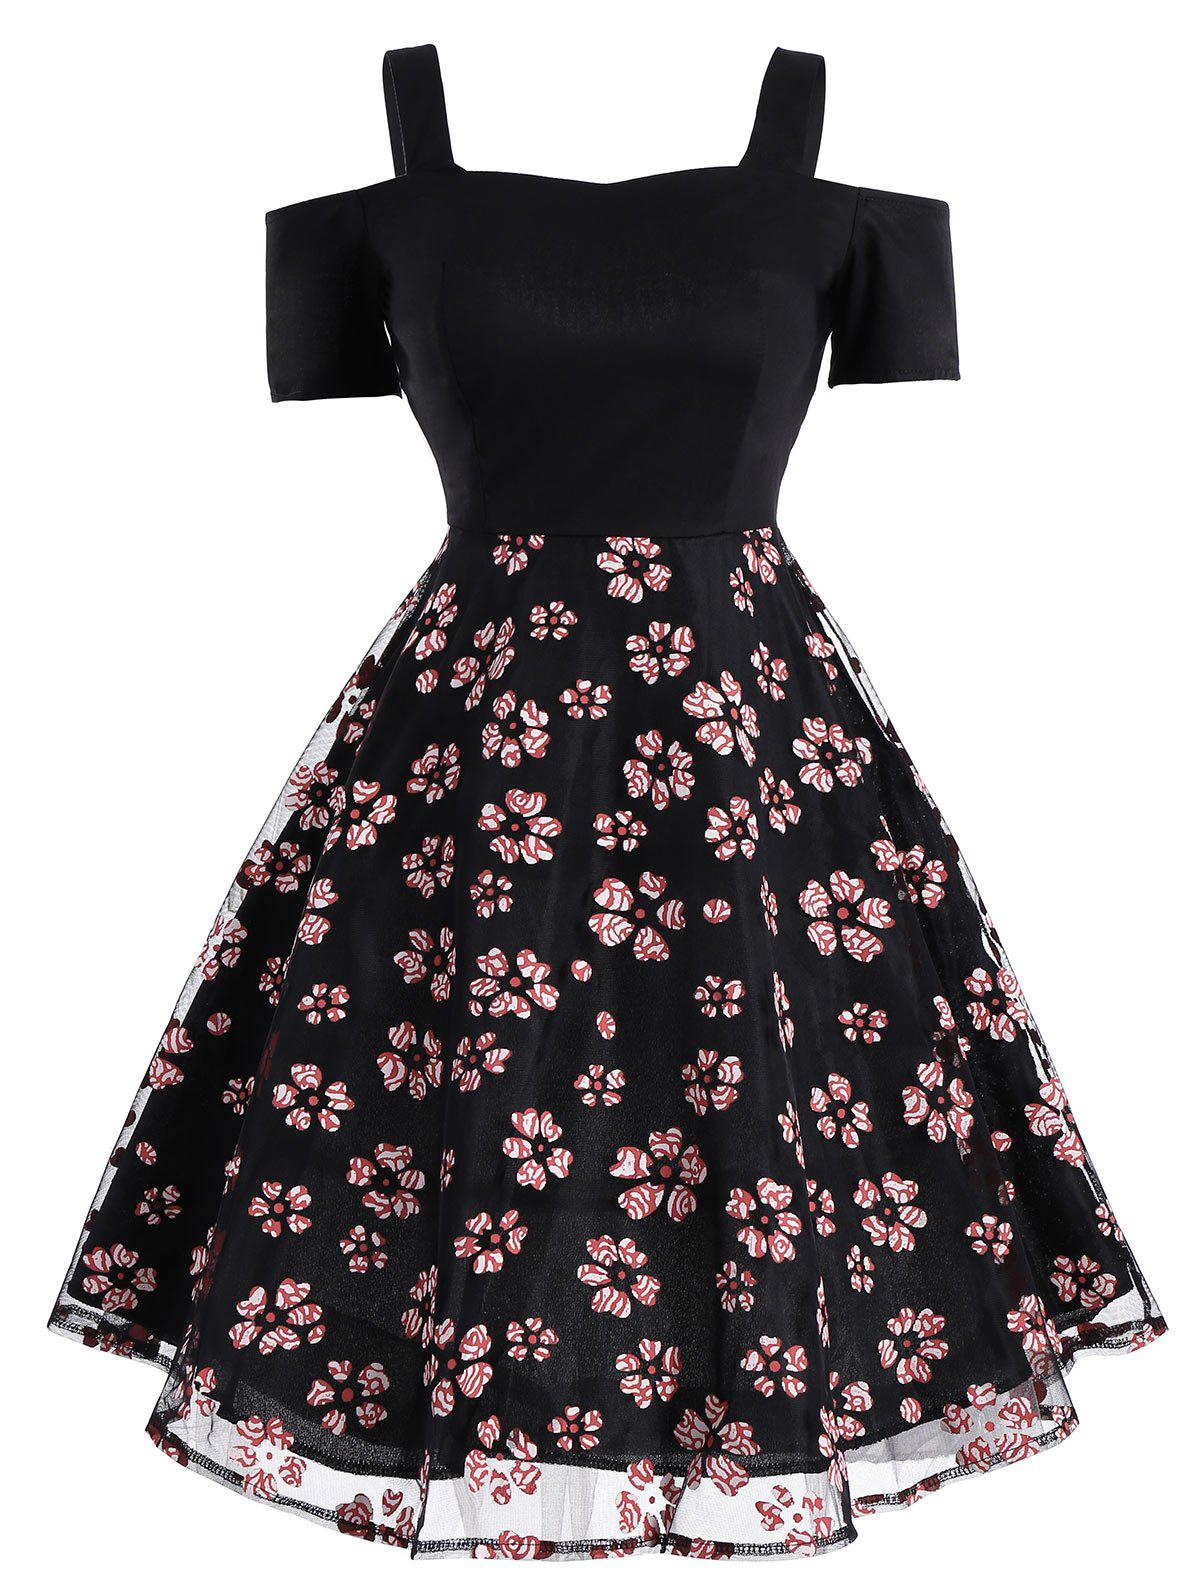 Mesh Panel Floral Vintage Fit and Flare DressWOMEN<br><br>Size: M; Color: BLACK; Style: Vintage; Material: Cotton,Polyester; Silhouette: A-Line; Dress Type: Fit and Flare Dress,Overlay Dress; Dresses Length: Mini; Neckline: Spaghetti Strap; Sleeve Length: Short Sleeves; Embellishment: Panel; Pattern Type: Floral; With Belt: No; Season: Summer; Weight: 0.3000kg; Package Contents: 1 x Dress;